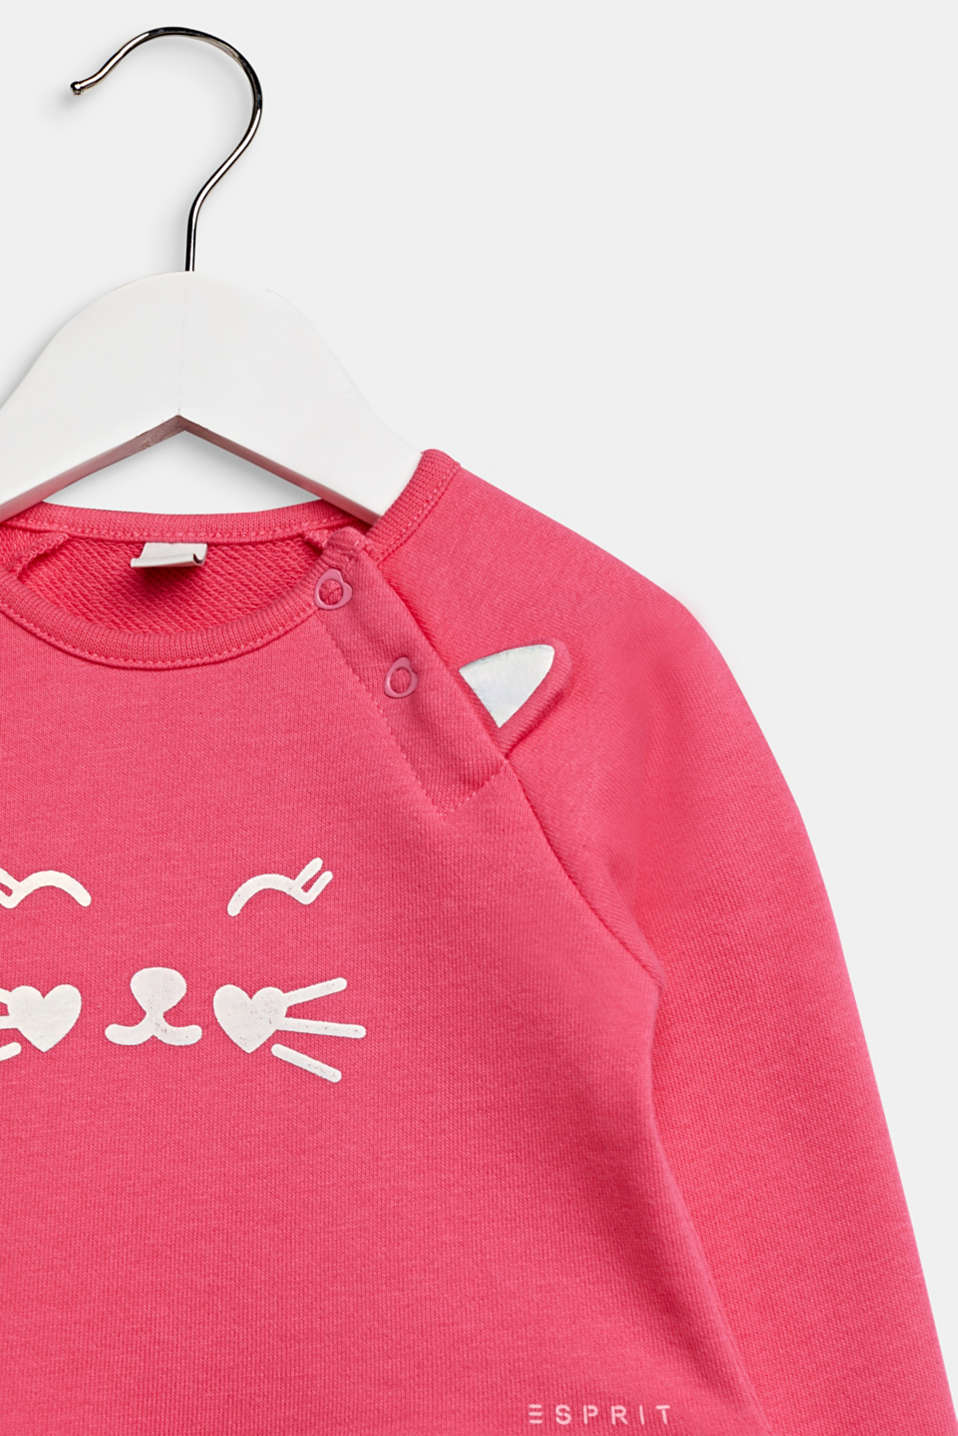 Sweatshirt dress with a cat face, 100% cotton, LCCANDY PINK, detail image number 3